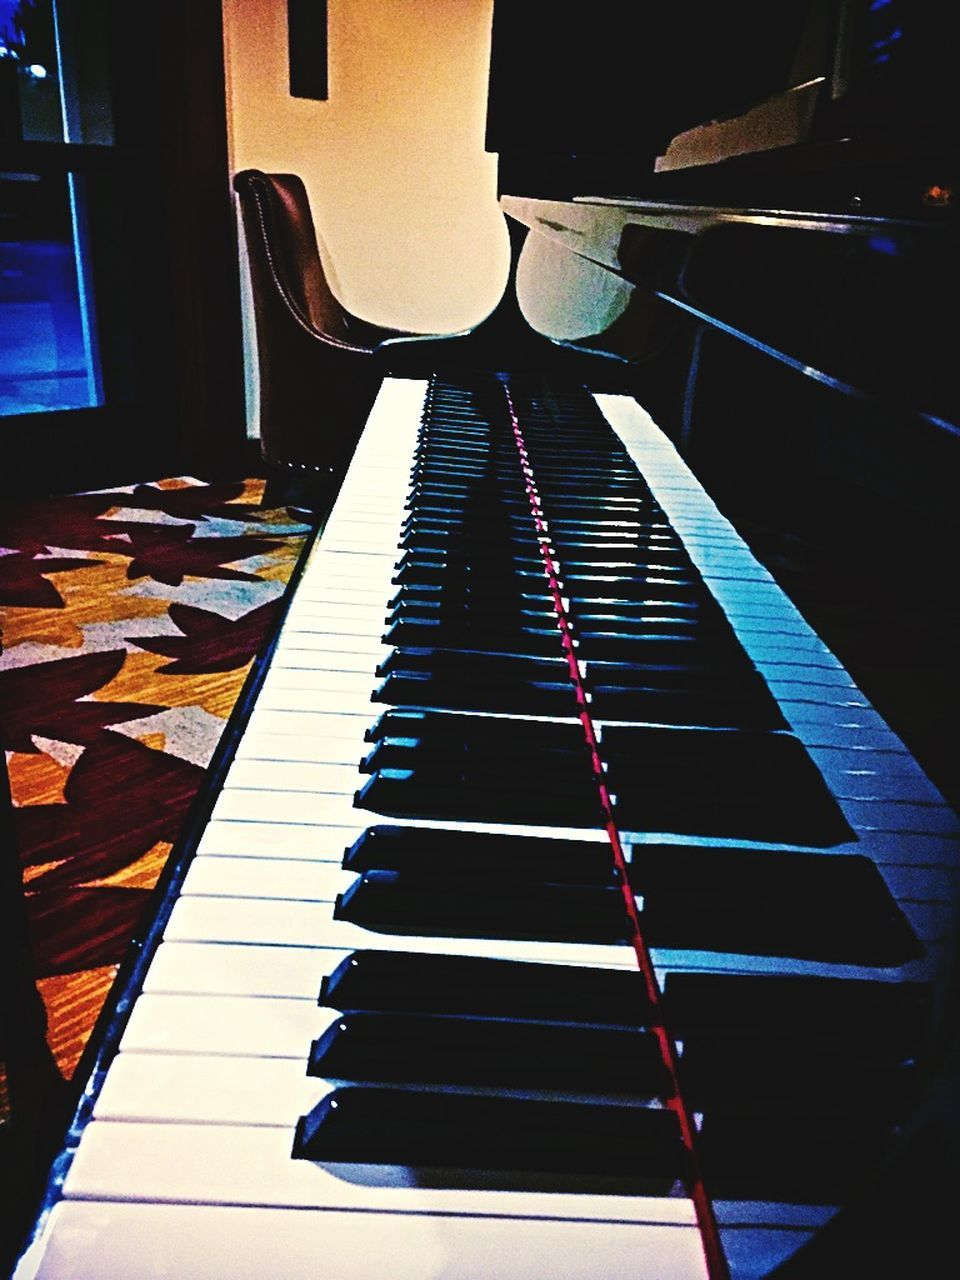 piano, music, piano key, musical instrument, indoors, arts culture and entertainment, no people, close-up, day, keyboard